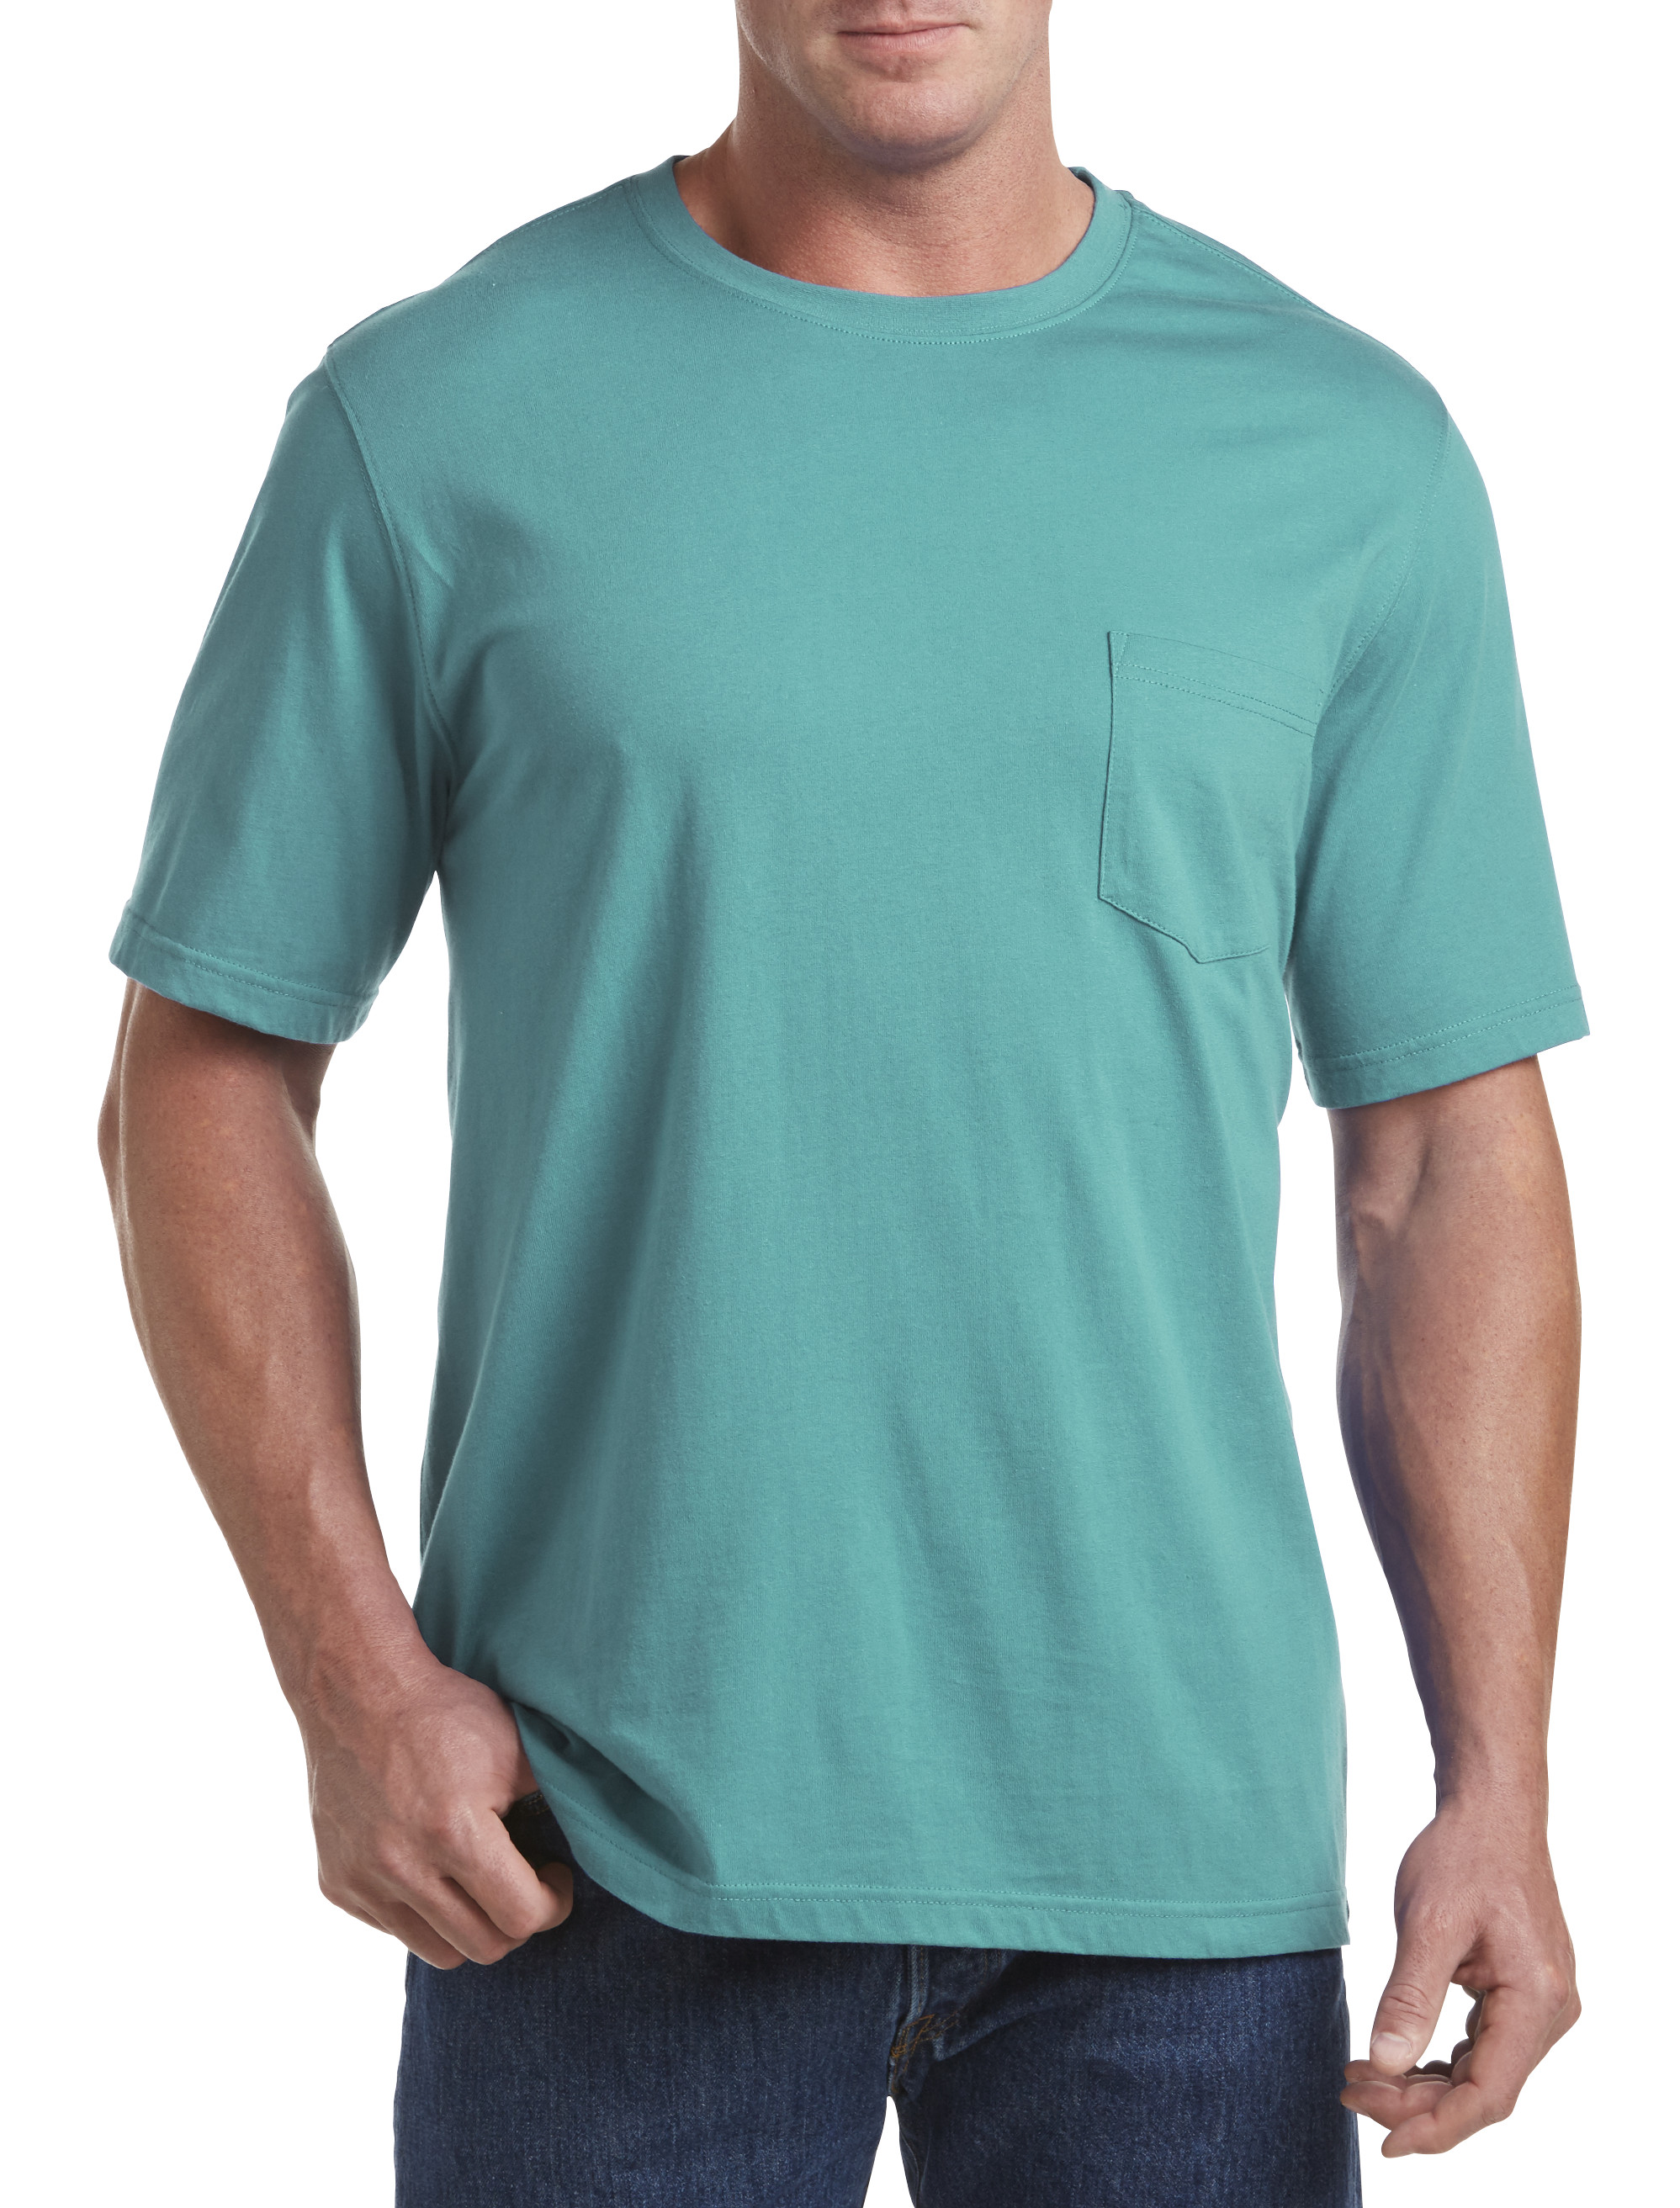 Harbor Bay� Wicking Jersey Pocket Tee (more sale colors)